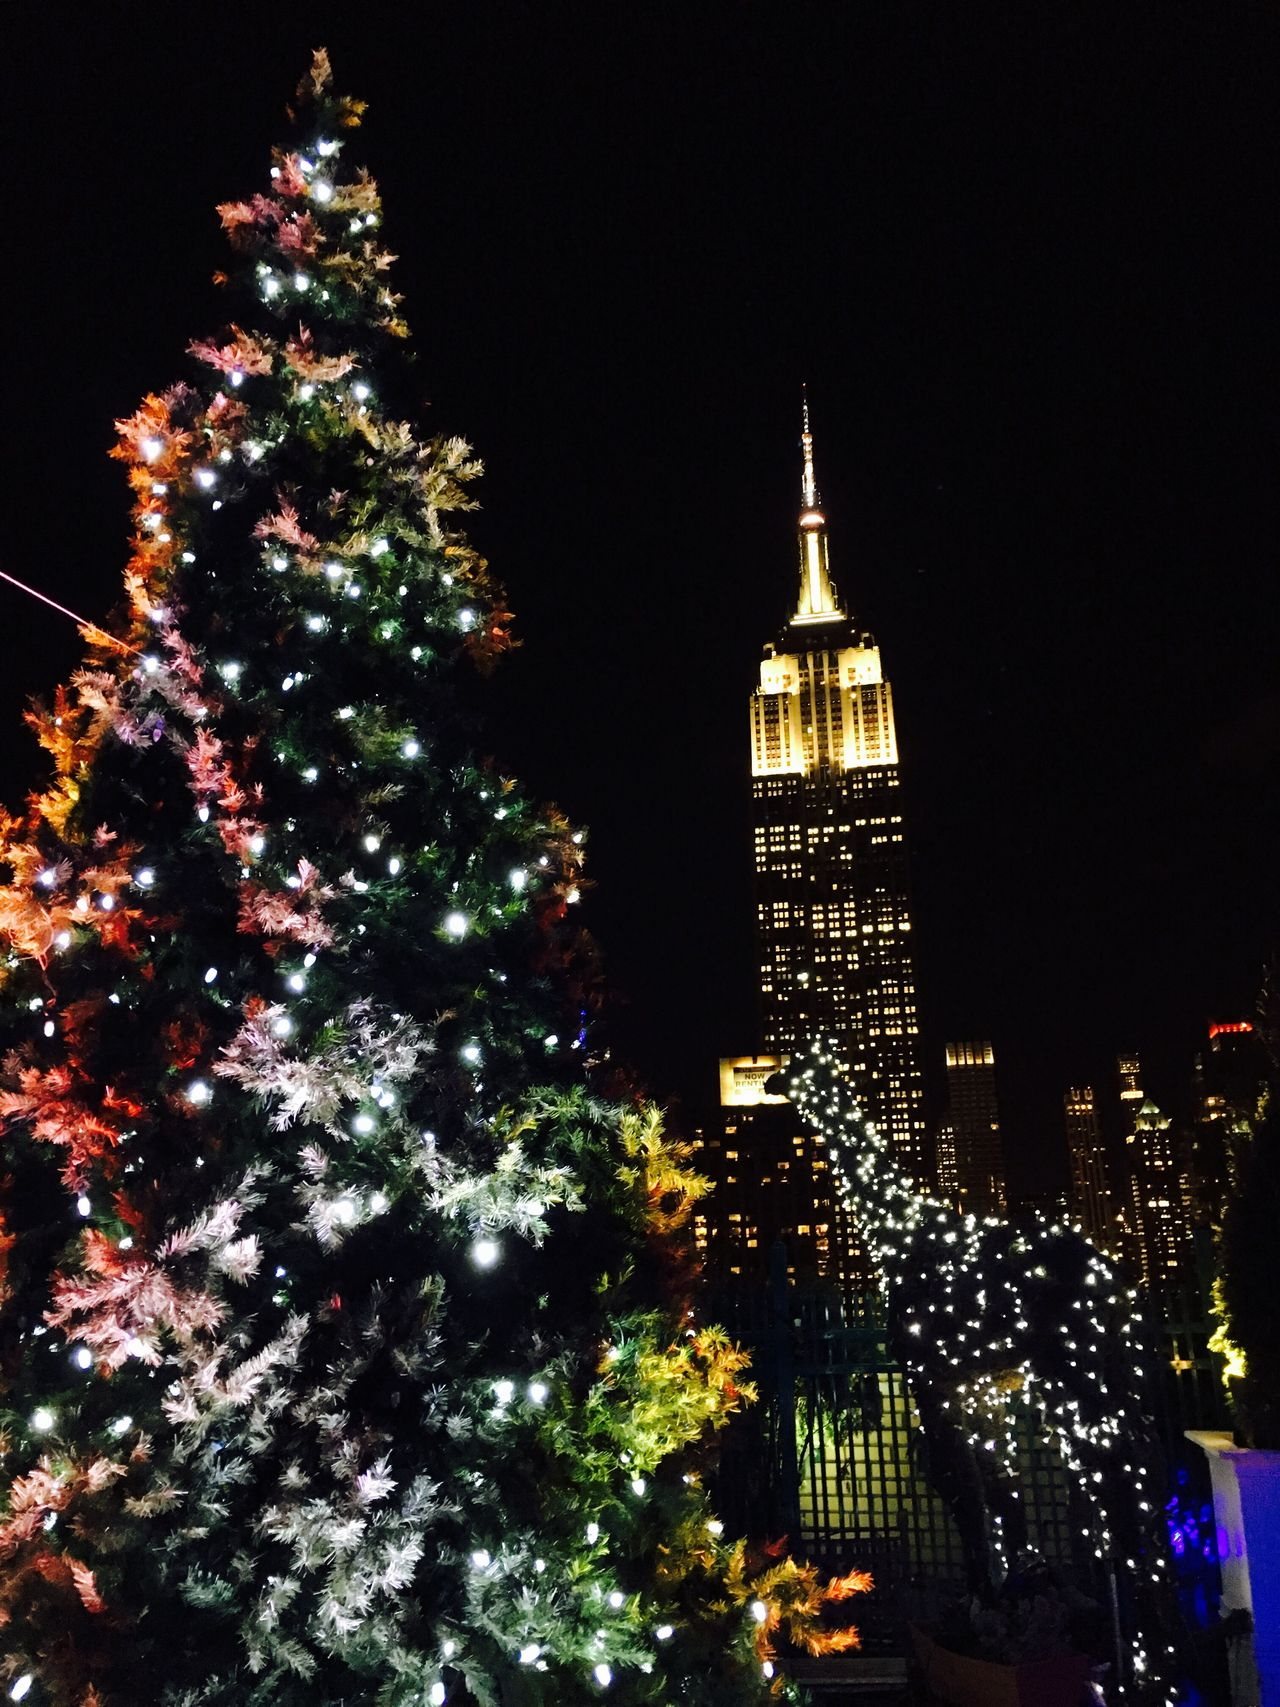 USA NYC Xmas Xmas Tree Illuminated Night Architecture Building Exterior City New York New York City Empire State Building Manhattan Christmas Christmas Tree Christmas Decoration Christmas Lights